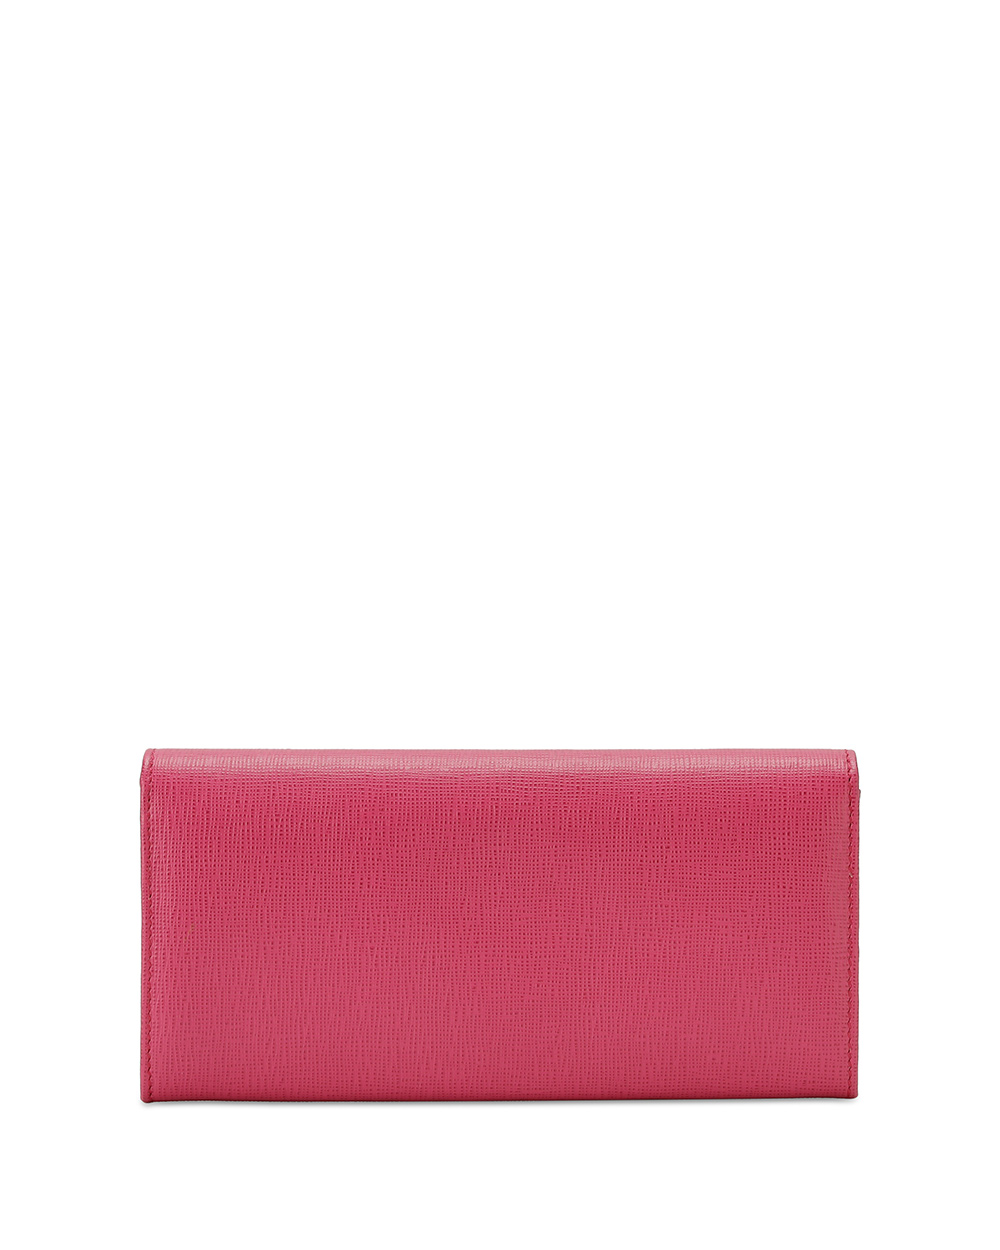 CRAYON Long Wallet 2